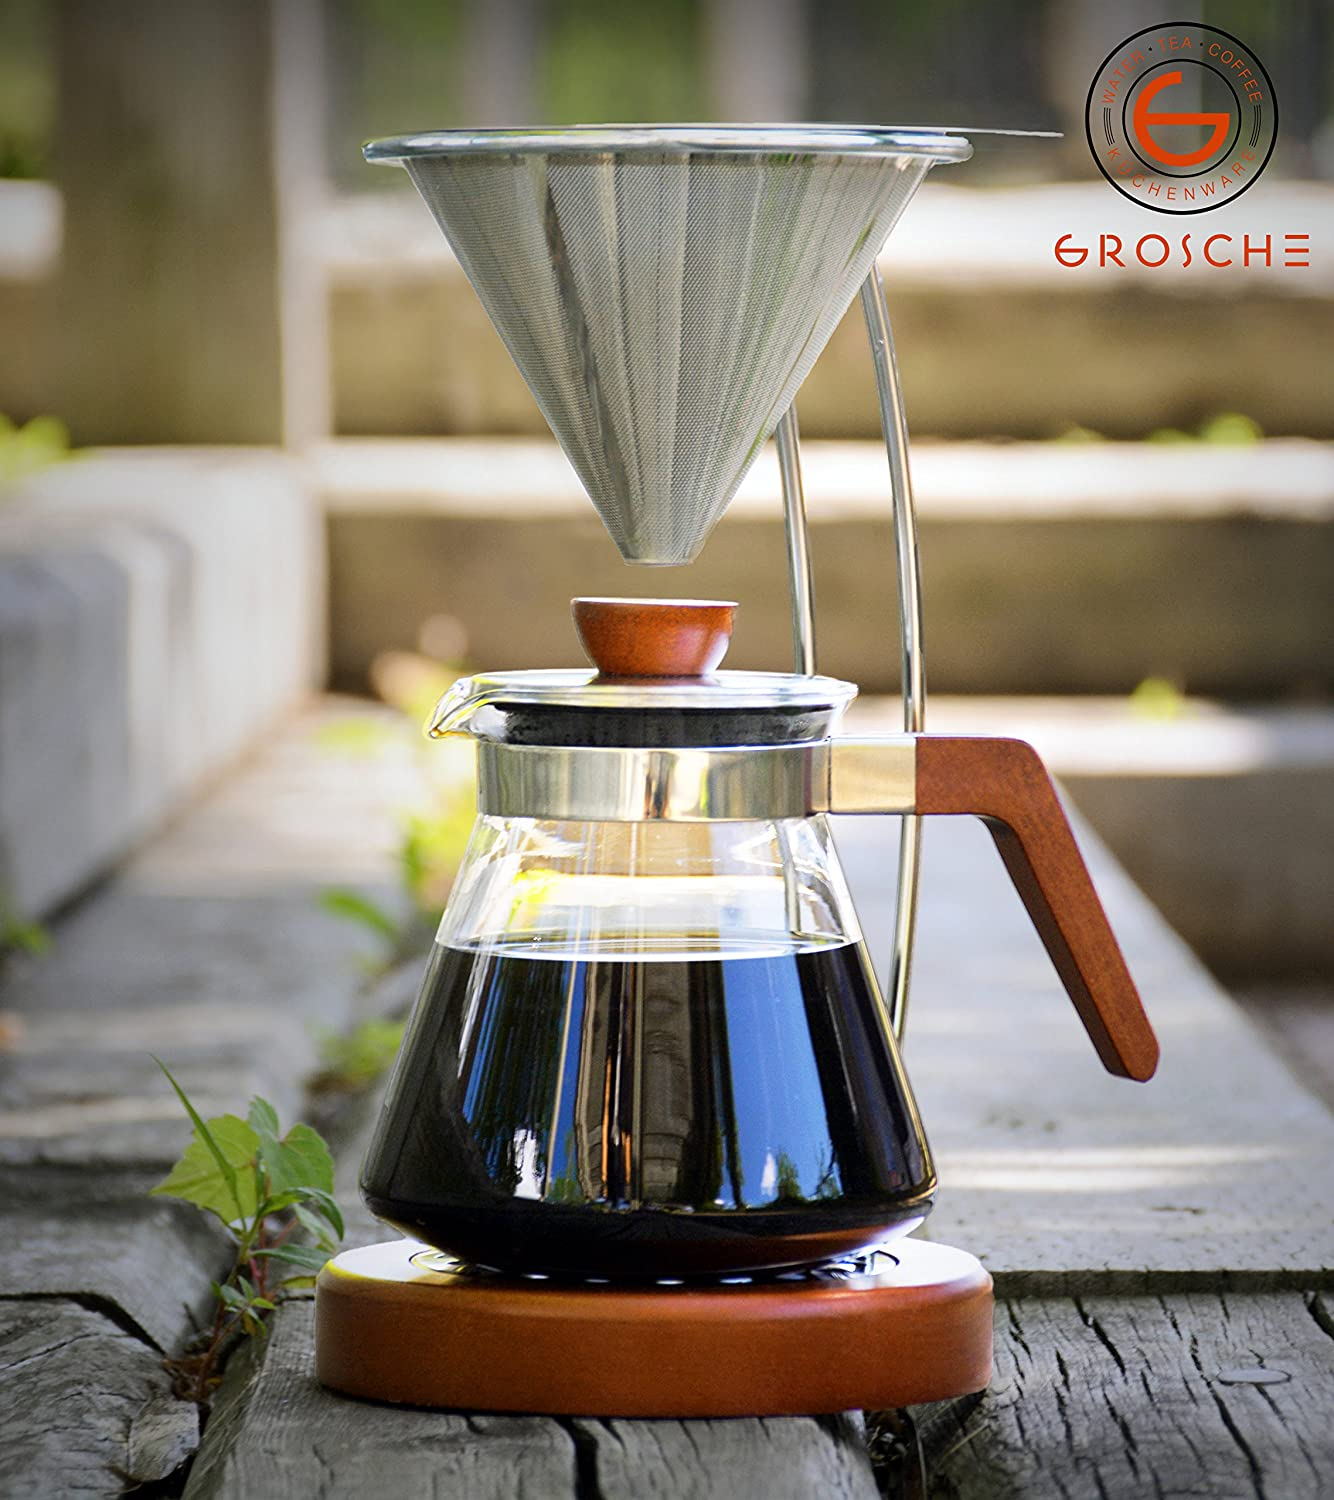 GROSCHE Frankfurt Pour Over Coffee Maker System with Permanent Reusable Filter and Coffee Server. 600ml/20.3 fl. oz GR 333